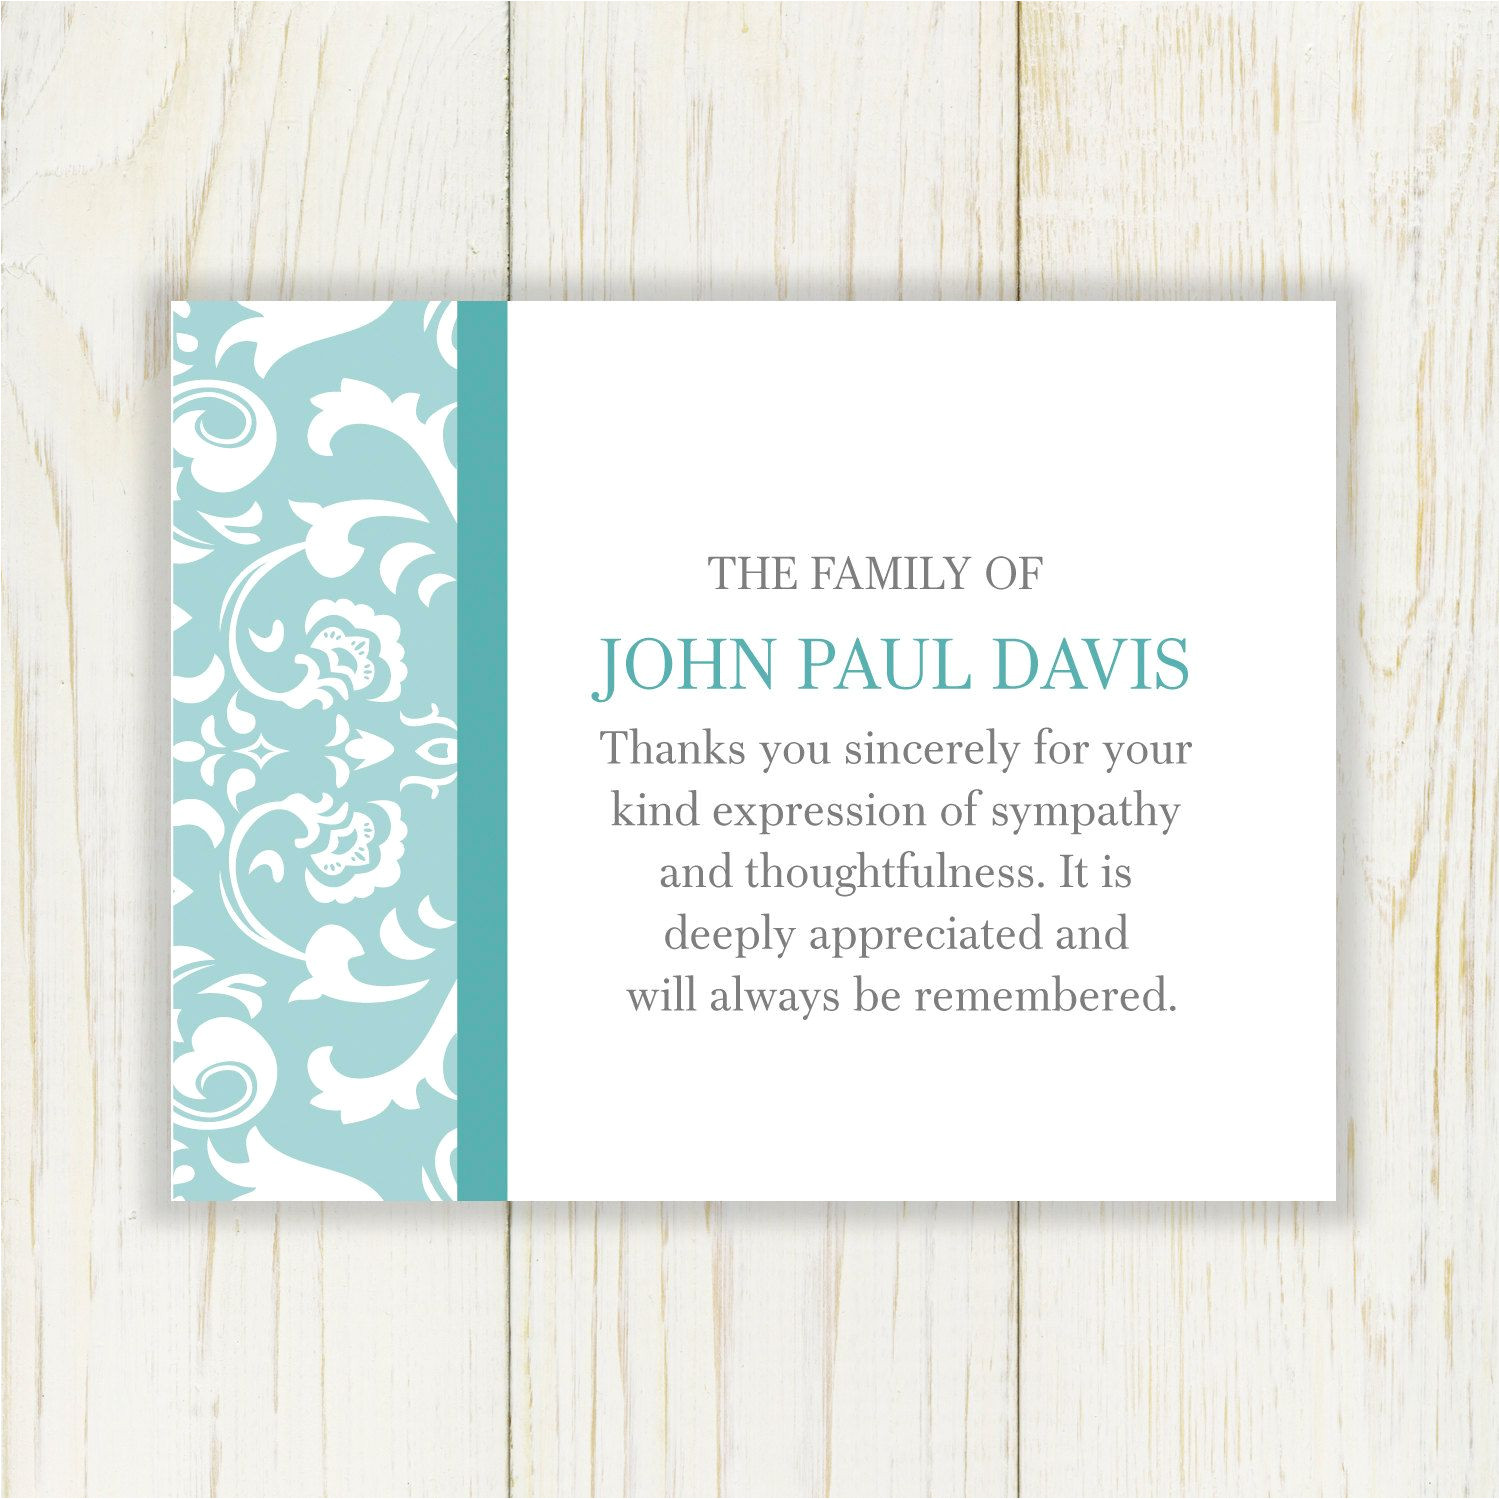 Simple Thank You Card Wording Il Fullxfull 362958171 7c21 Jpg 1500a 1499 with Images